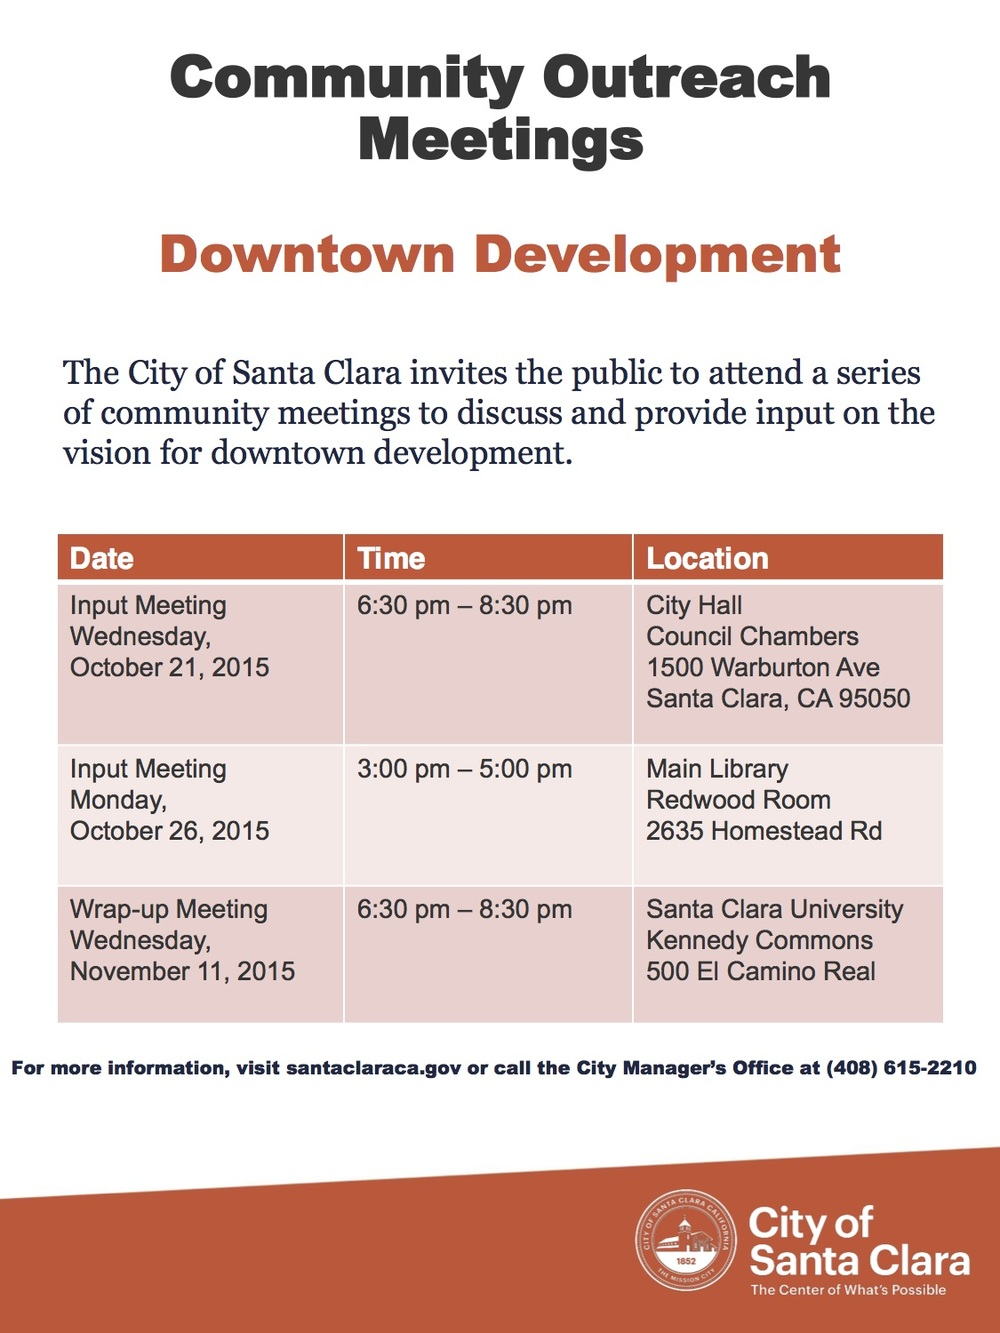 Downtown Outreach Meeting Flyer.jpg